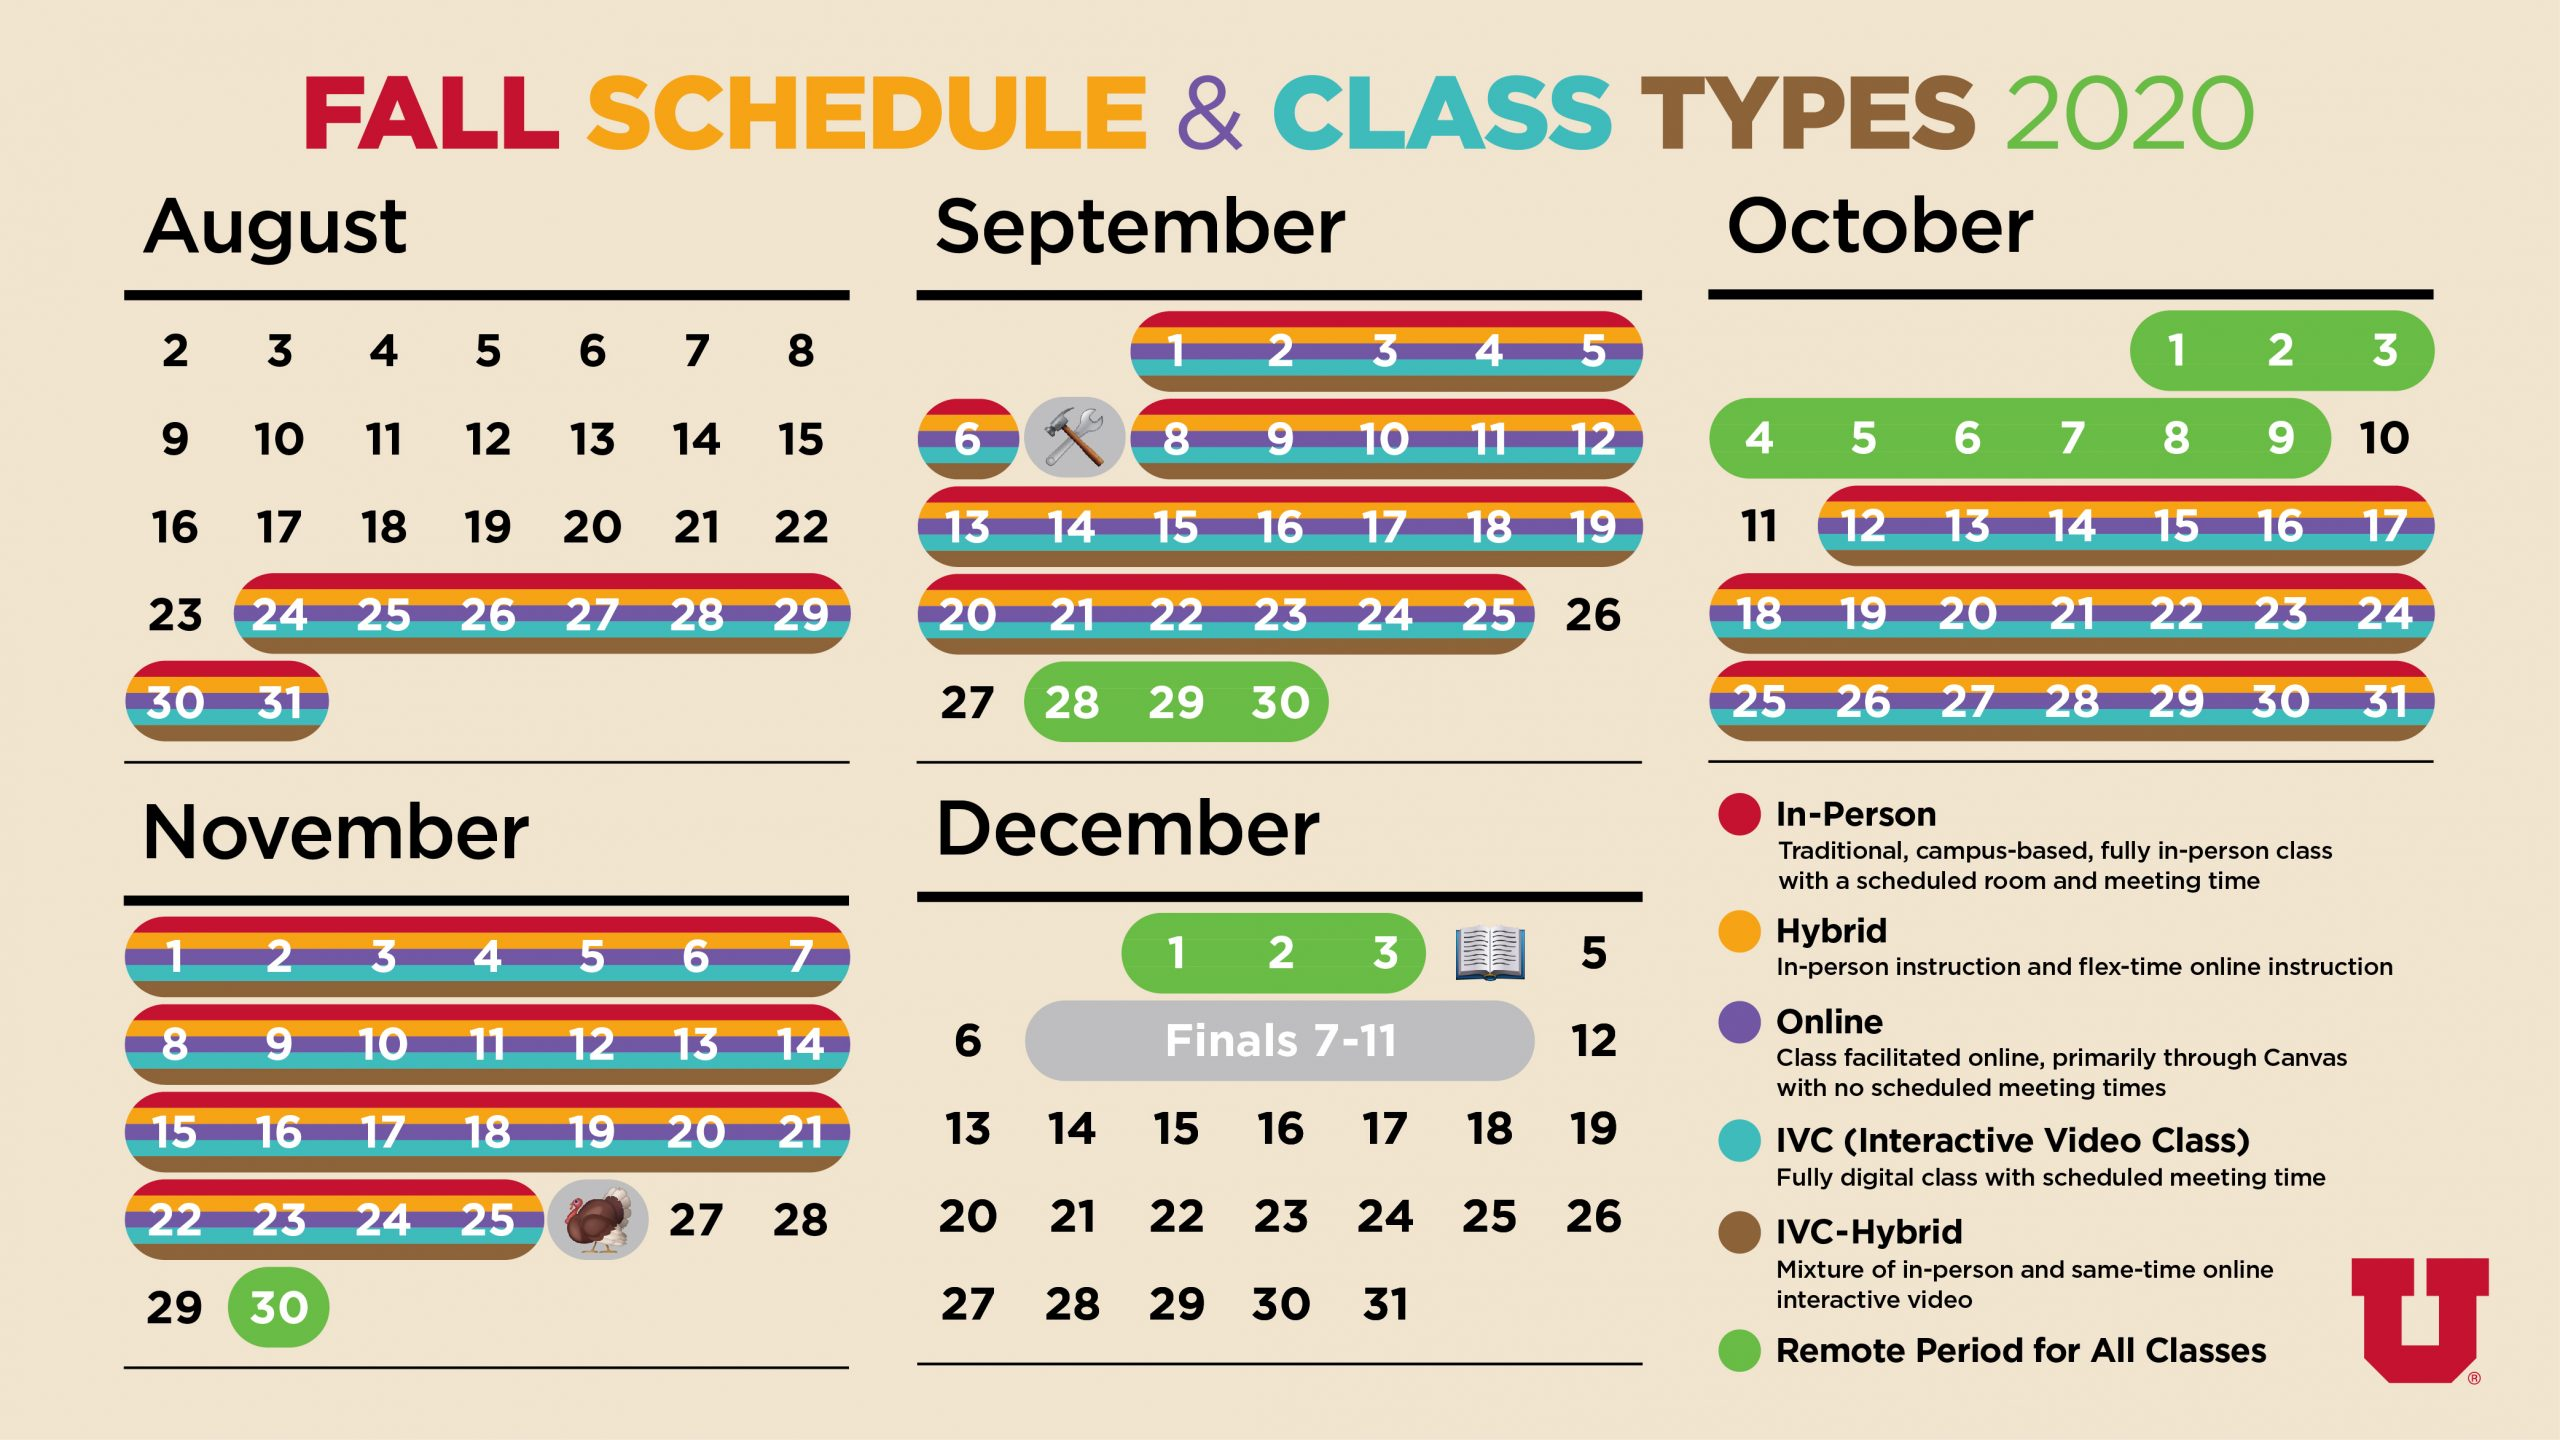 Fall Schedule and Class Types